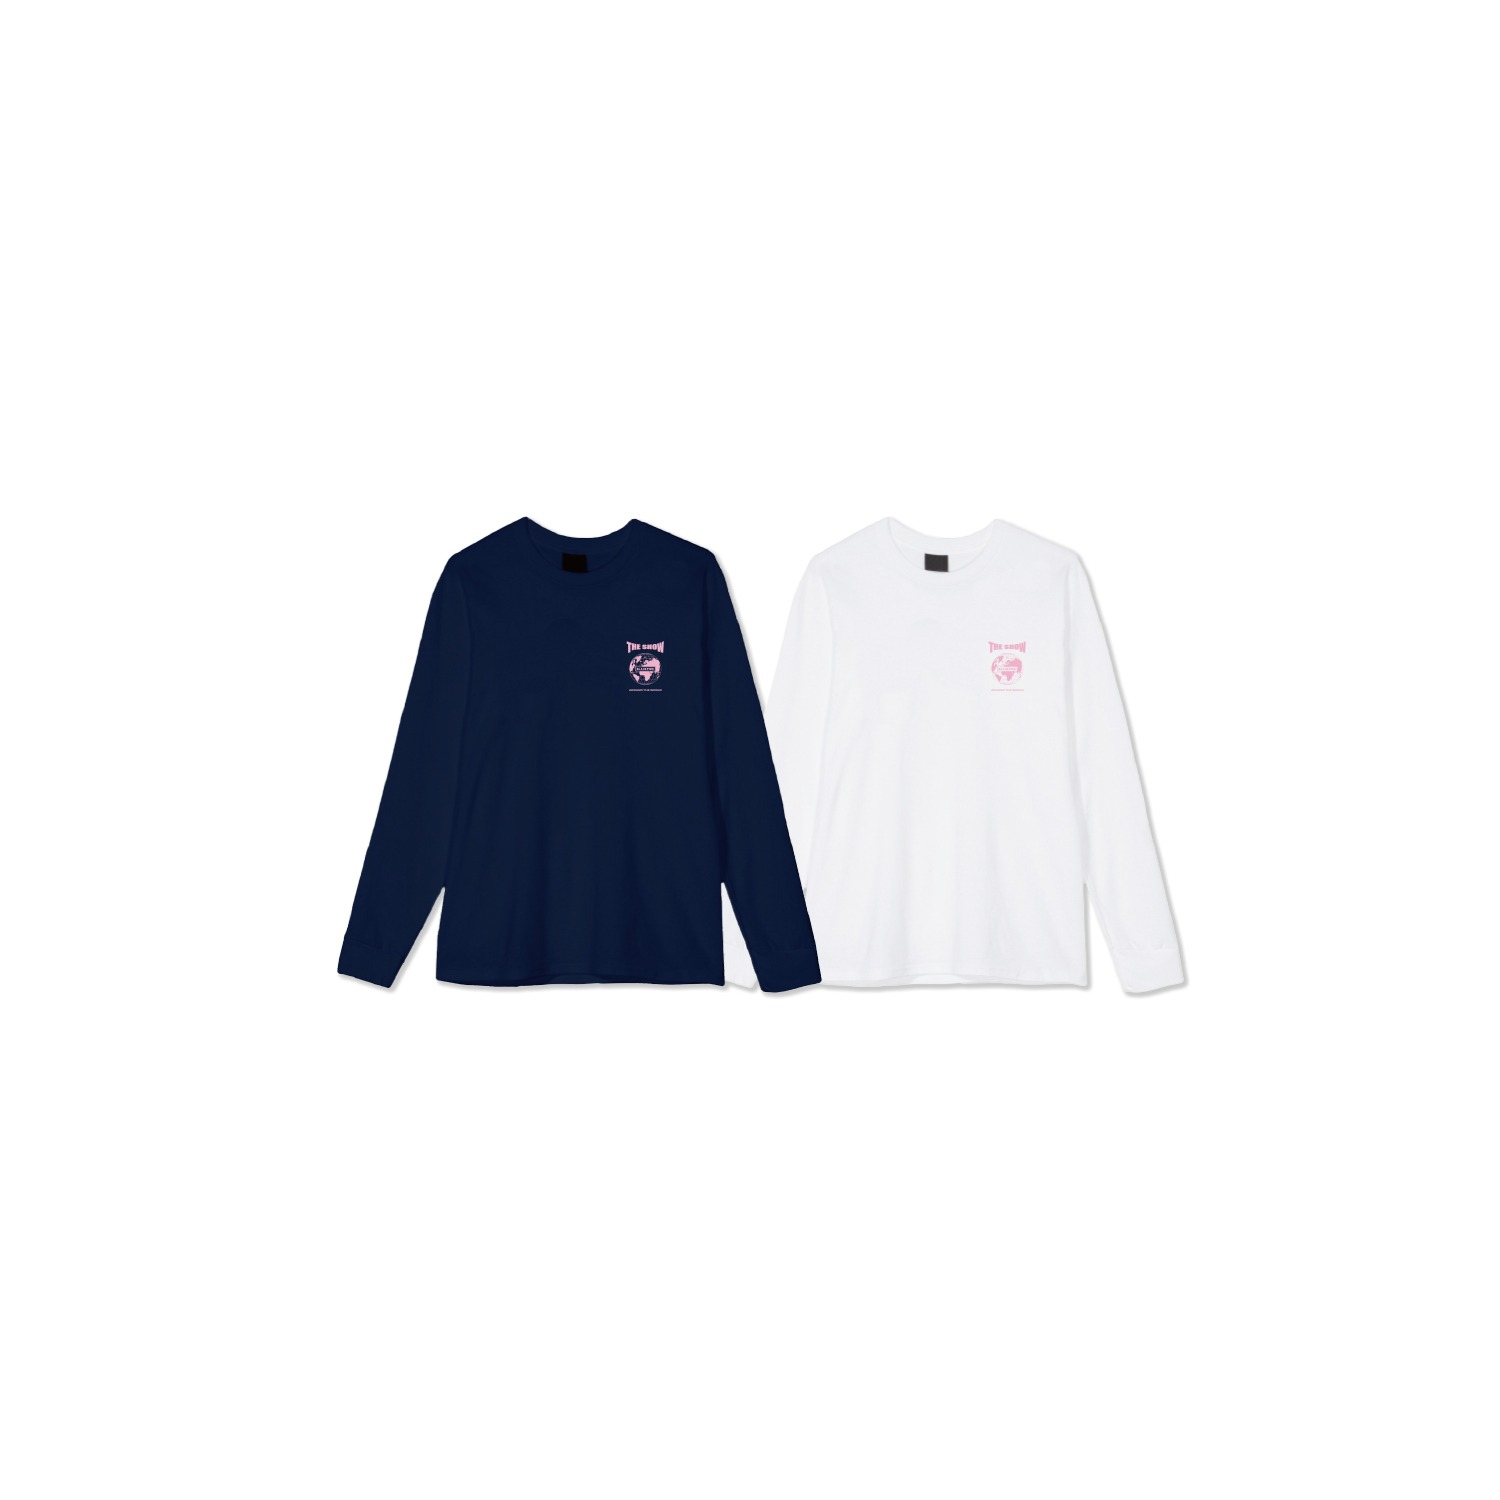 [THESHOW] BLACKPINK LONG SLEEVE T-SHIRTS_TYPE 1